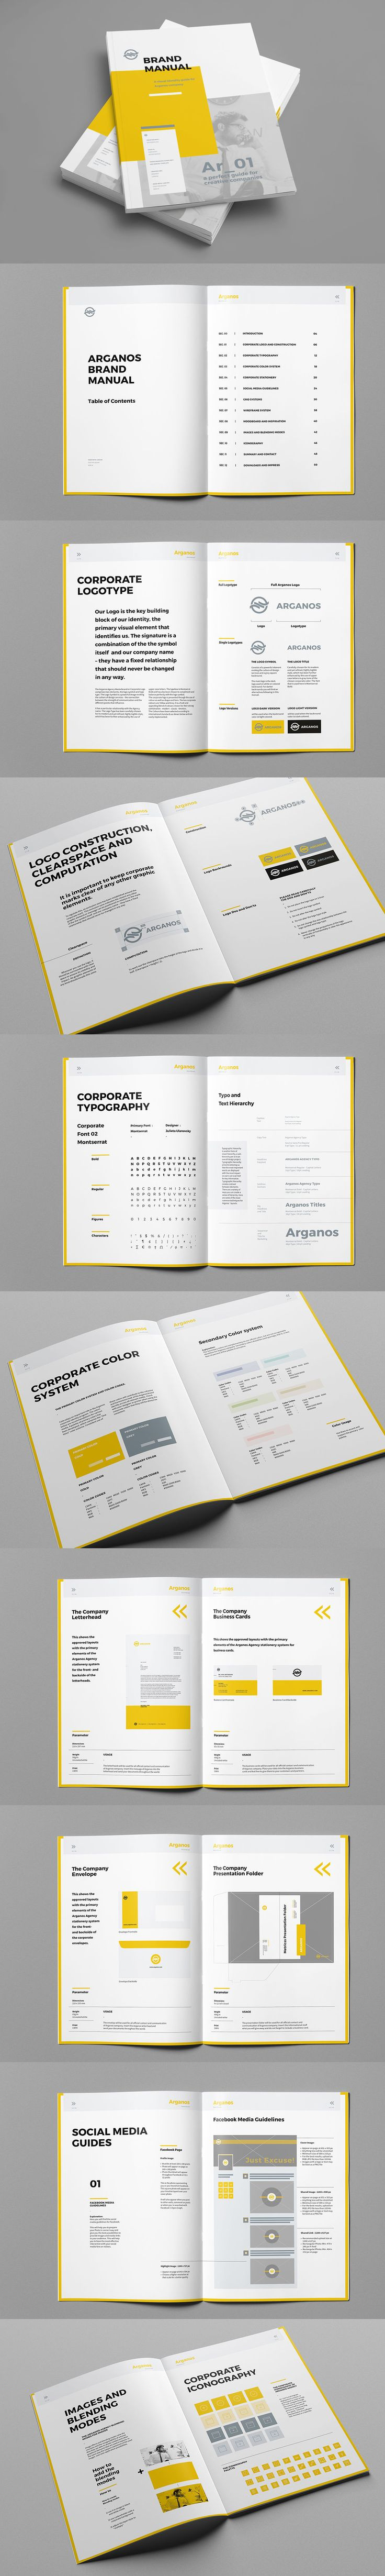 Brand Manual Template InDesign INDD - 48 Pages, A4